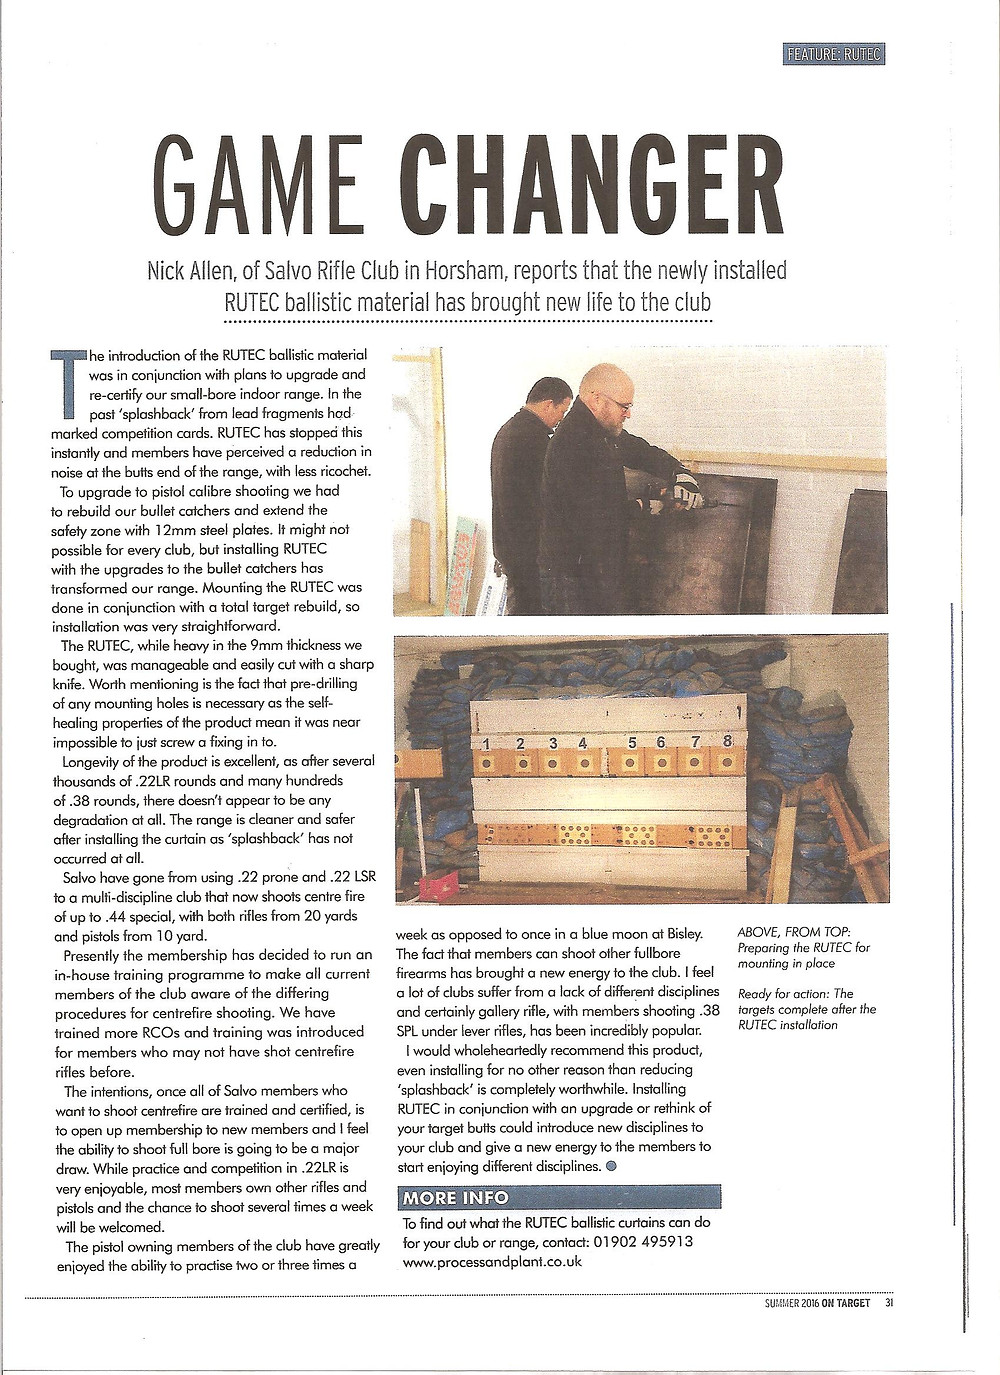 Nick Allen of Salvo rifle club explains how Rutec has brought new life to the club, the article shows photos of the old range with photos of the new targets using RUTEC below. A massive improvement!!